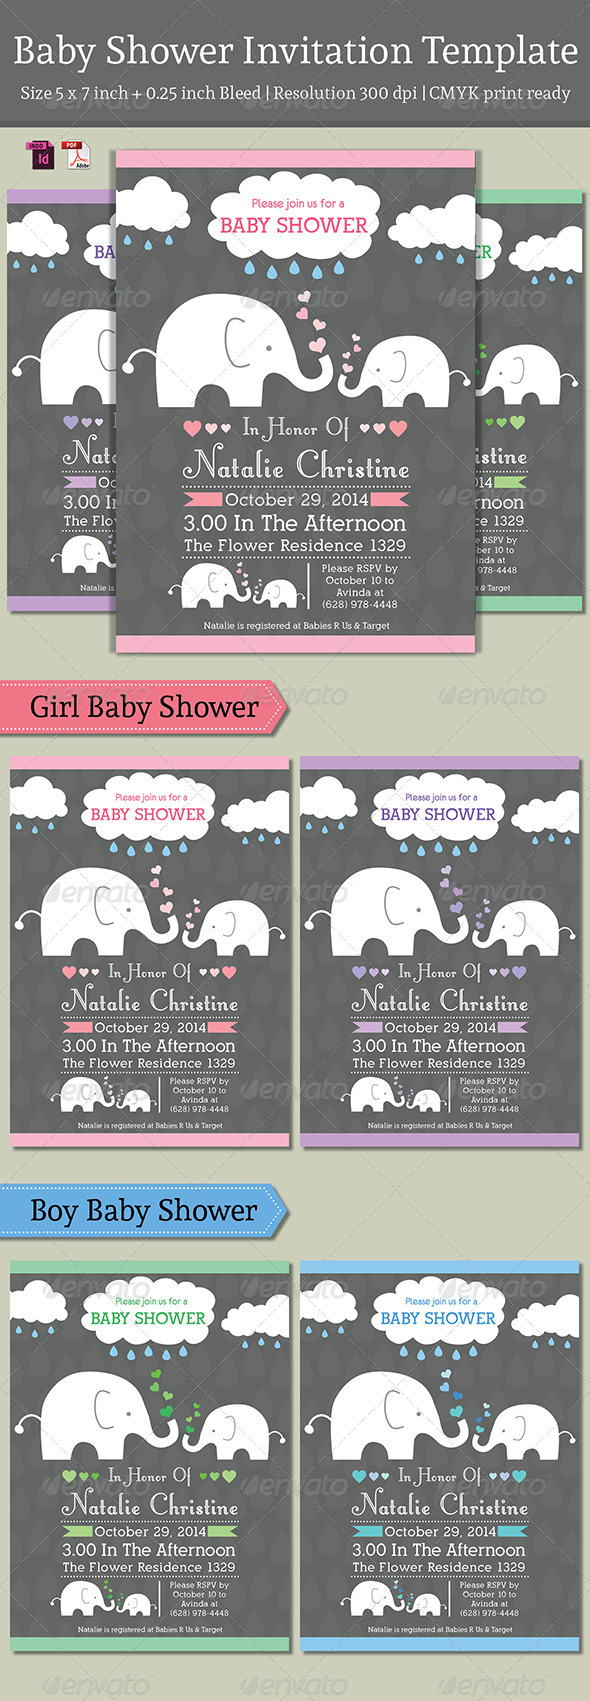 Baby Shower Template - Vol. 3 - Invitations Cards & Invites